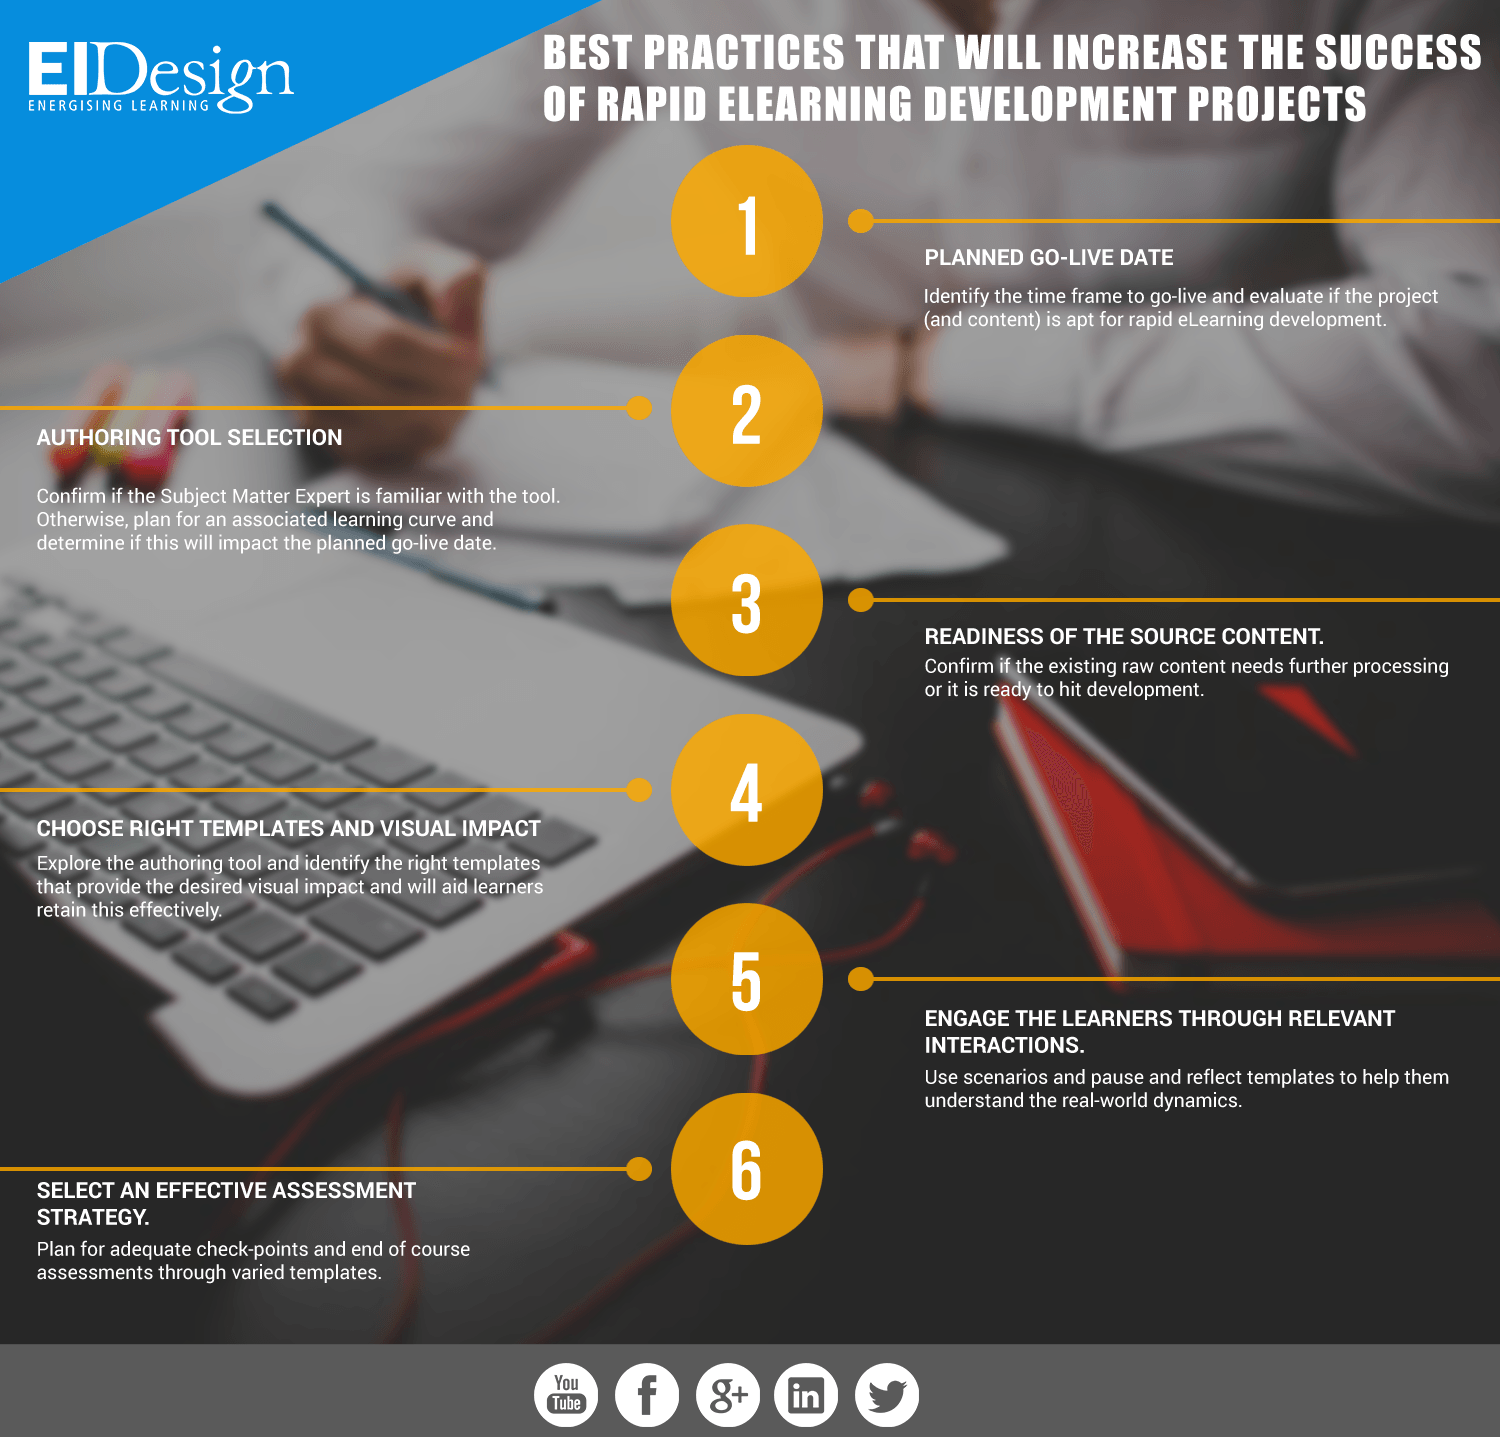 Rapid eLearning Development Projects Infographic